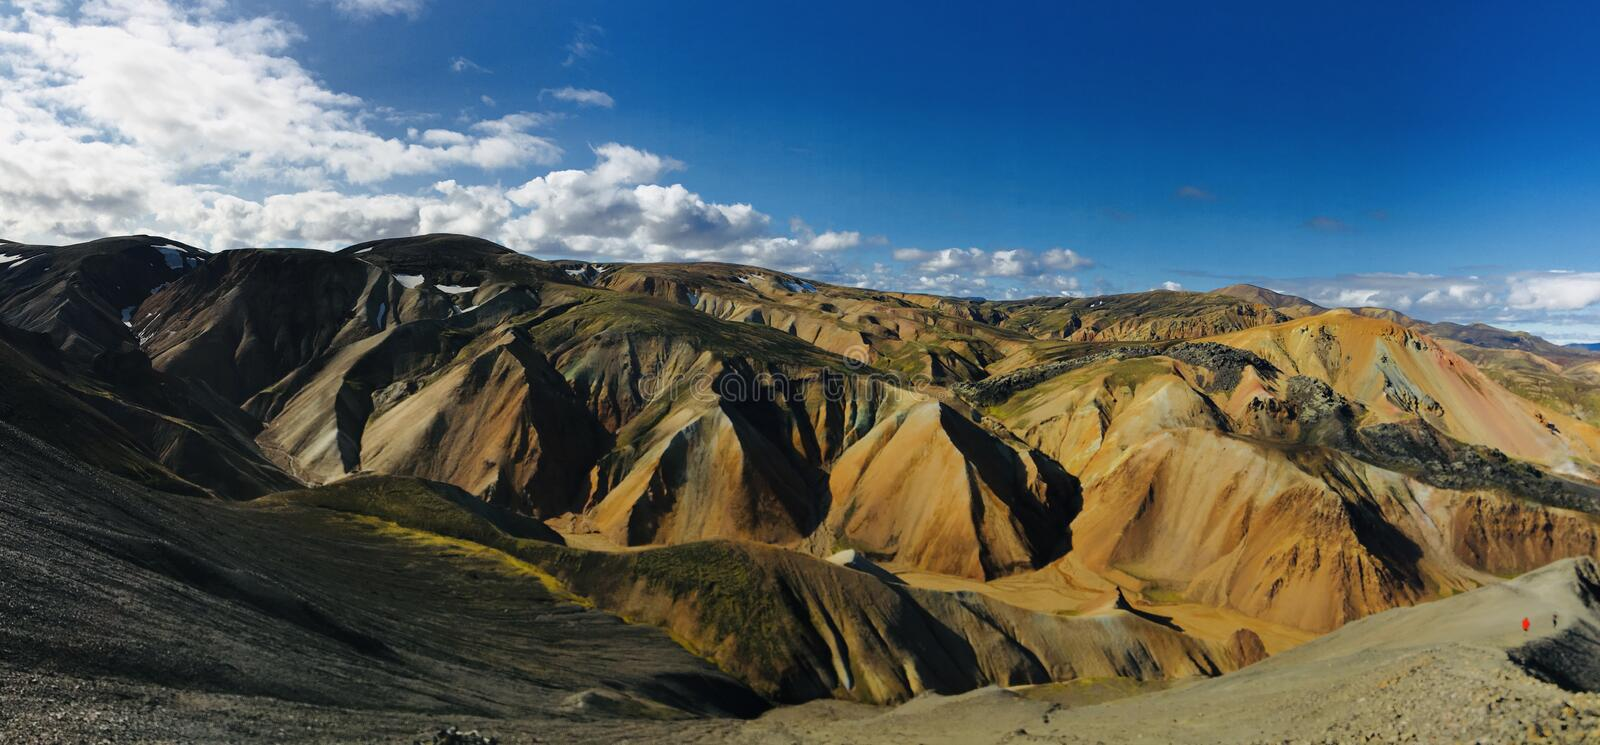 Landmannalaugar rainbow mountains in Iceland. View from Blahnúkur to the most beautiful places in the world - Rainbow mountains royalty free stock photography